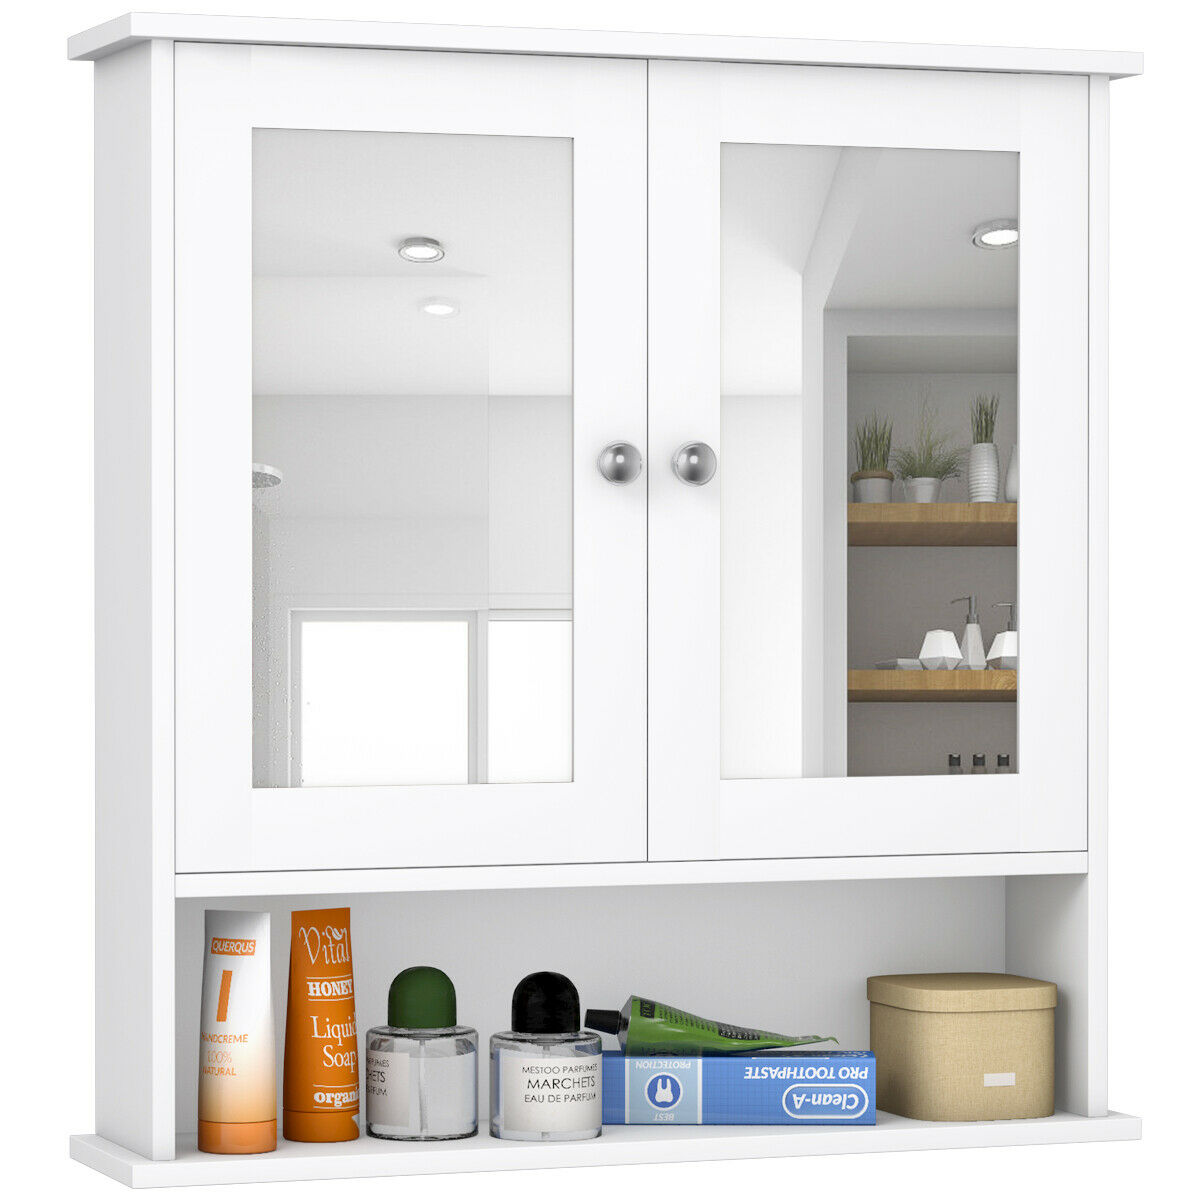 Costway New Bathroom Wall Cabinet Double Mirror Door Cupboard Storage Wood Shelf White